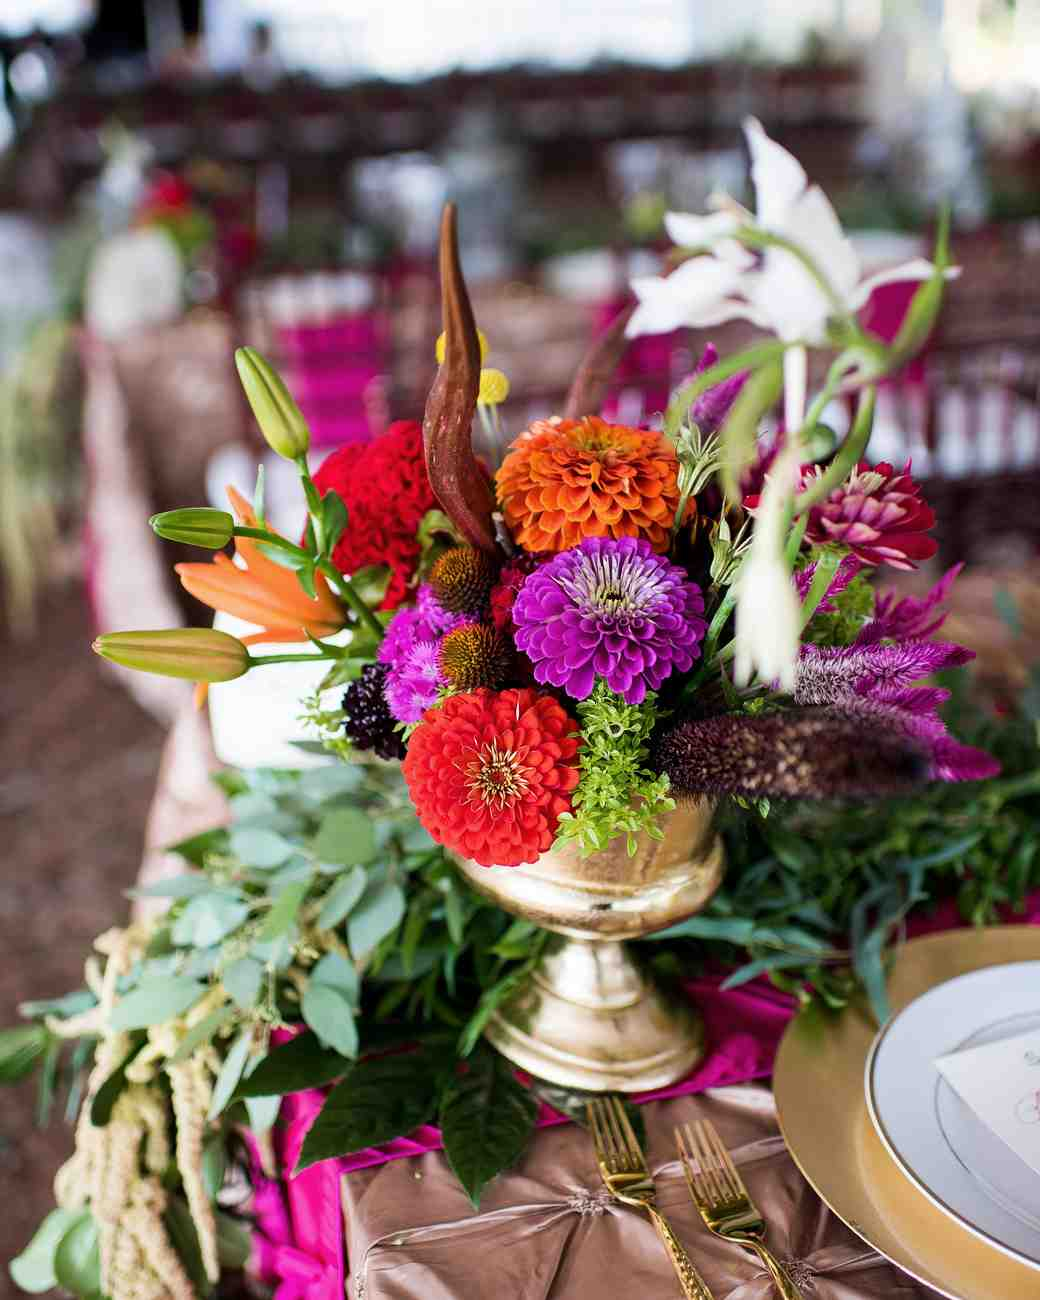 christopher-stephen-wedding-centerpiece-0467-s112787-0416.jpg